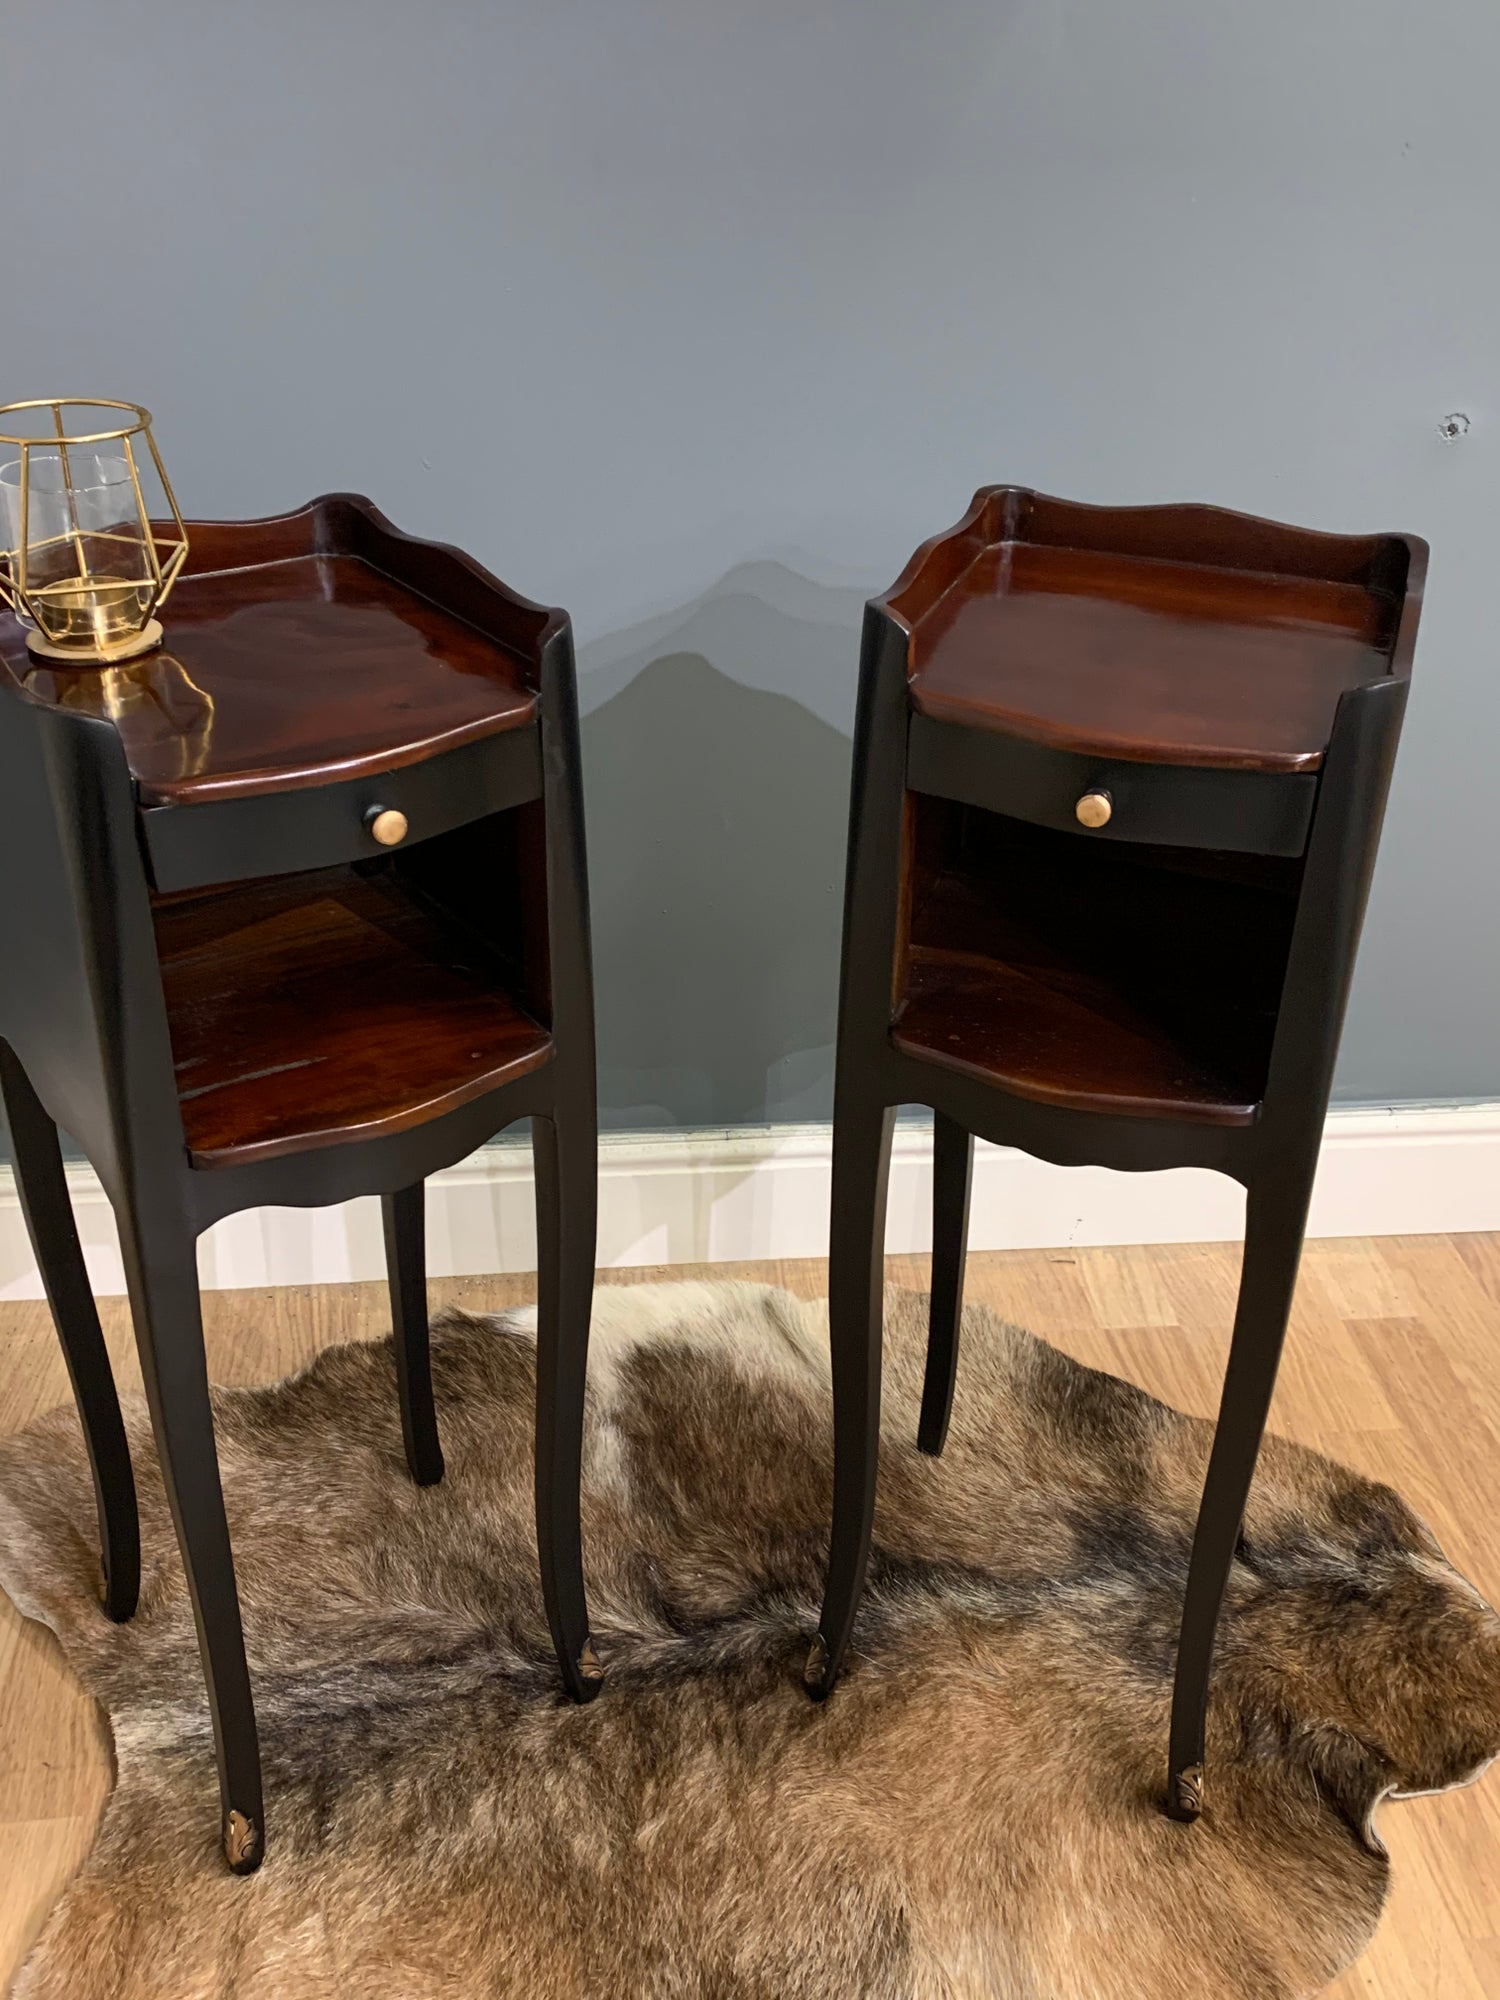 Image of Black and mahogany bedside/side tables